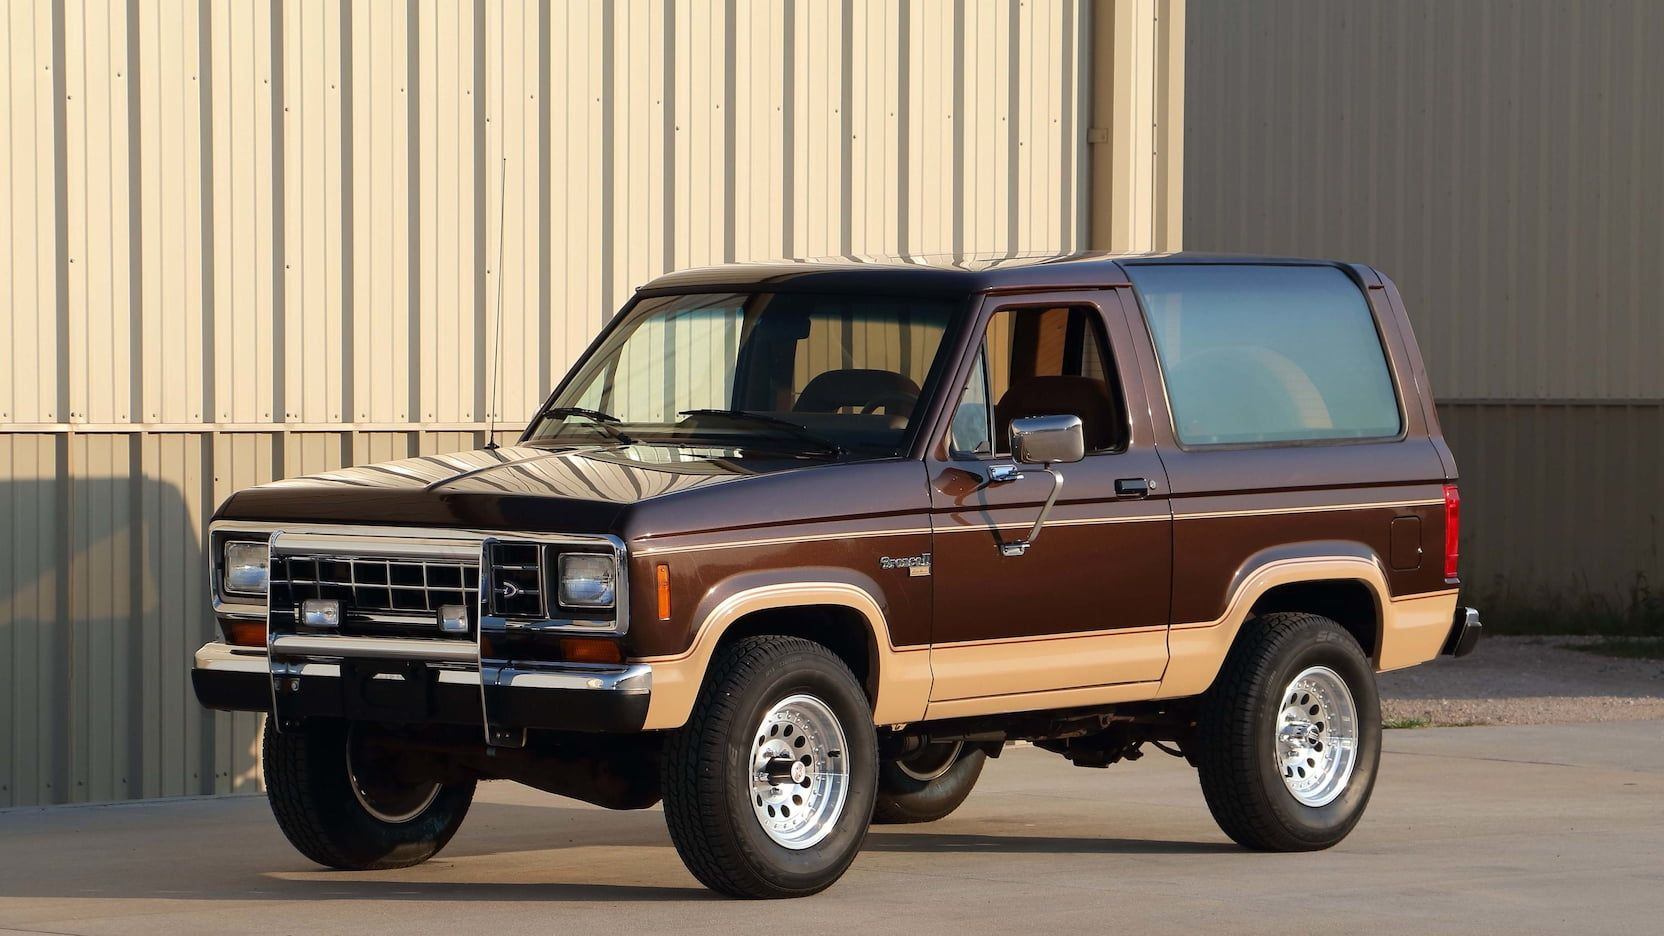 Almost Classic 1984 1990 Ford Bronco Ii Hagerty Media In 2020 Ford Bronco Ii Bronco Ii Ford Bronco